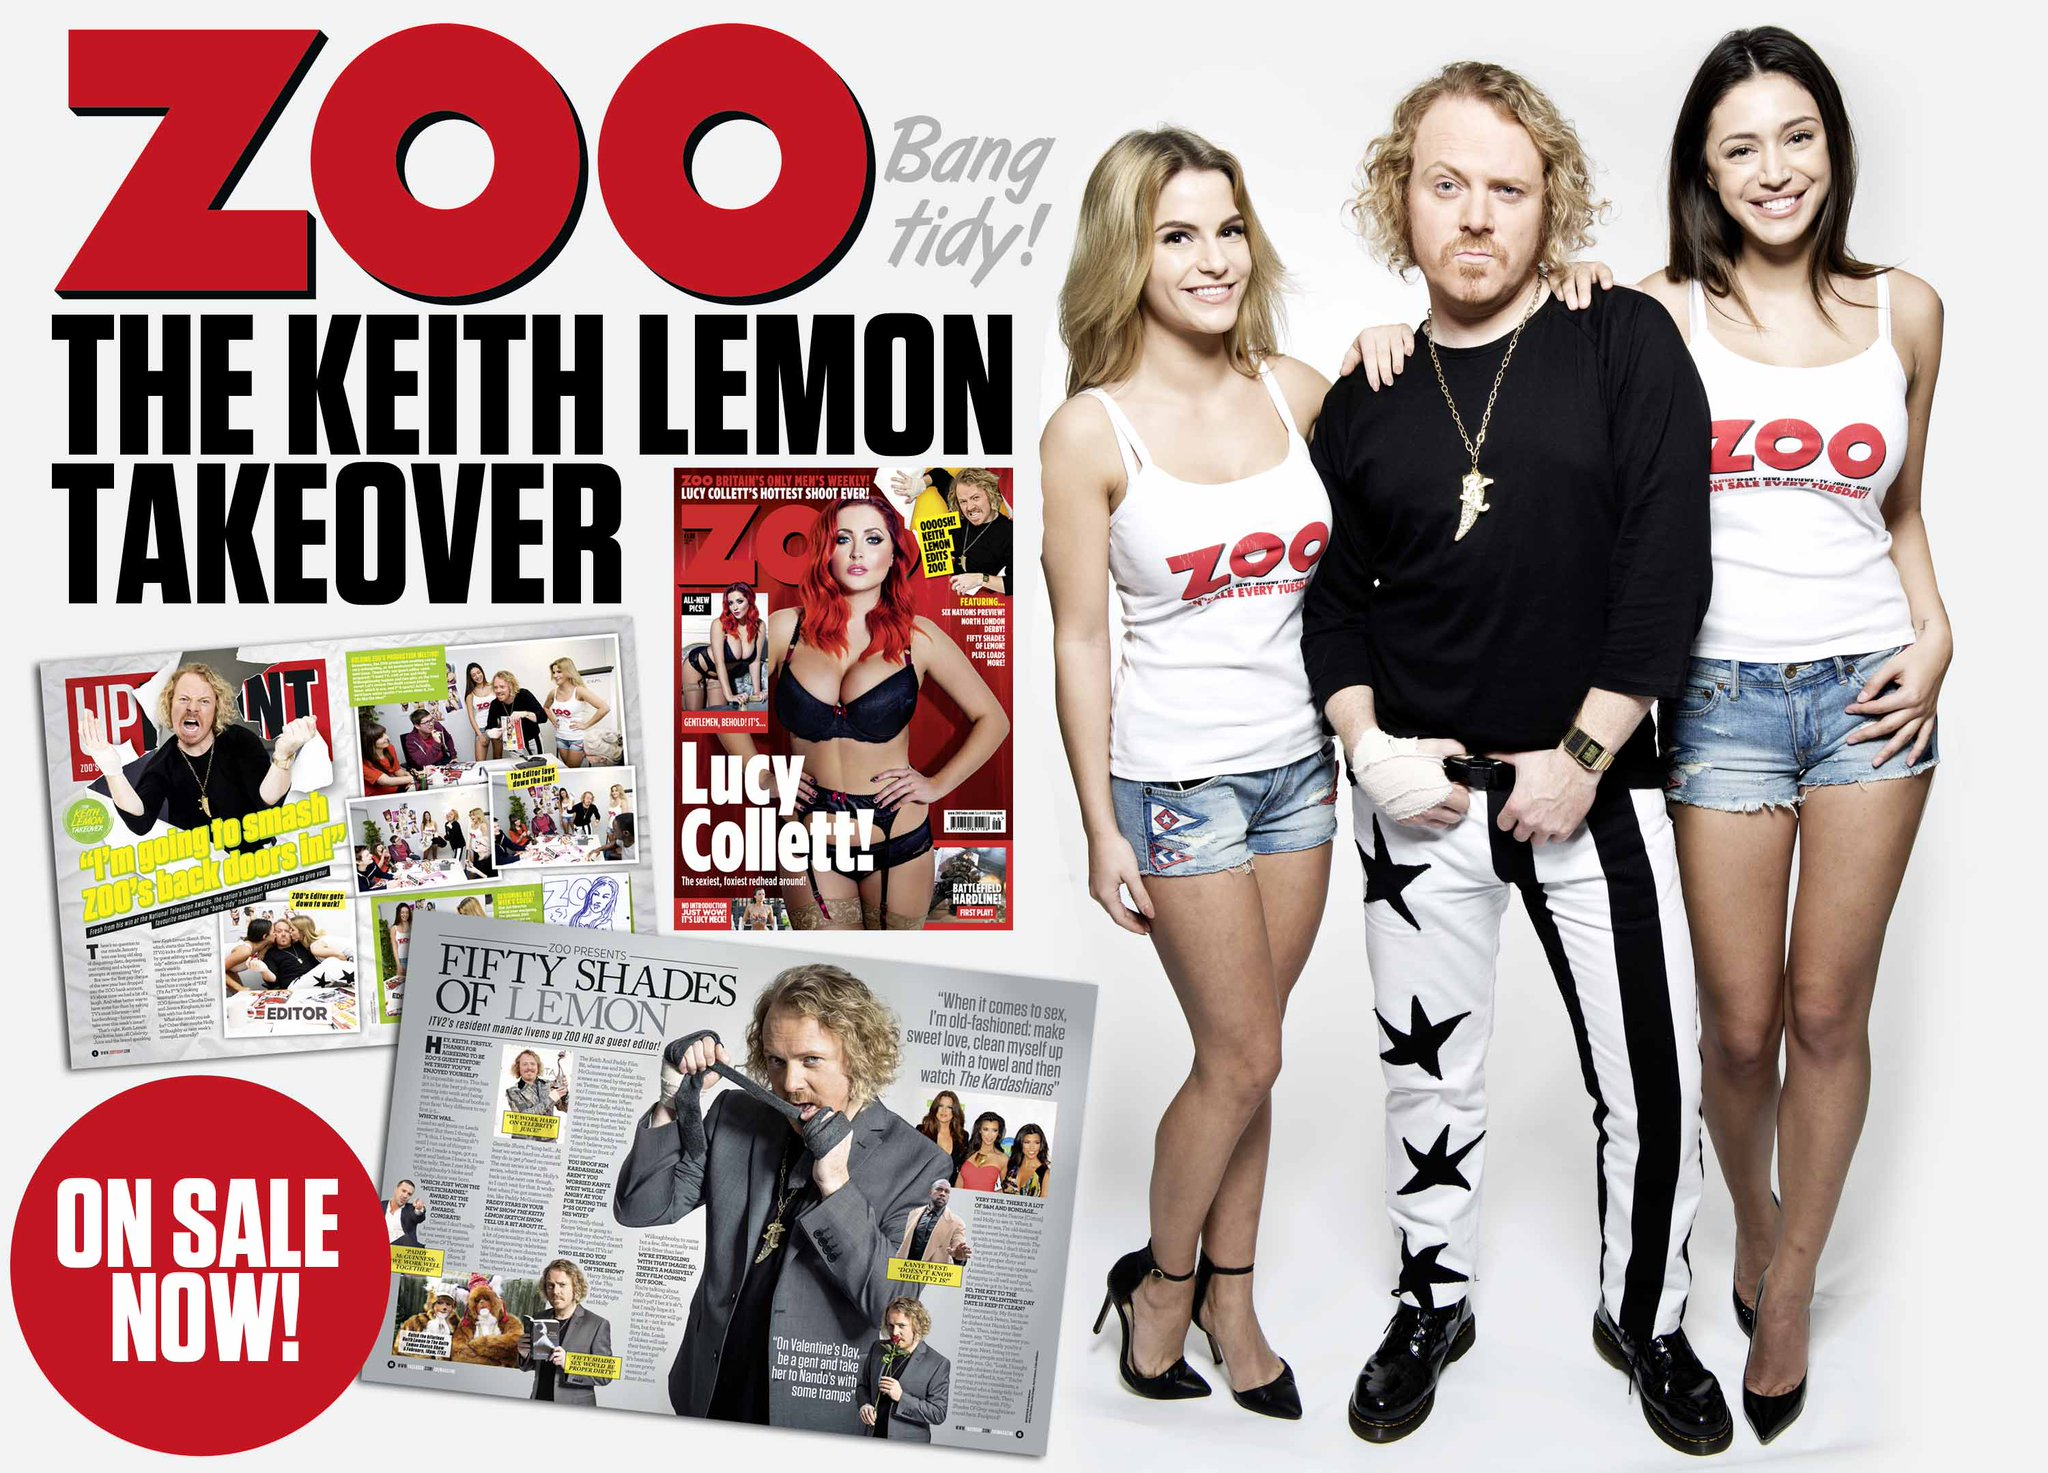 RT @ZOO: Popping out? Pick up this week's ZOO, guest-edited by @lemontwittor & starring @Lucy__Vixen! http://t.co/w7HO2dvaSi http://t.co/1q…